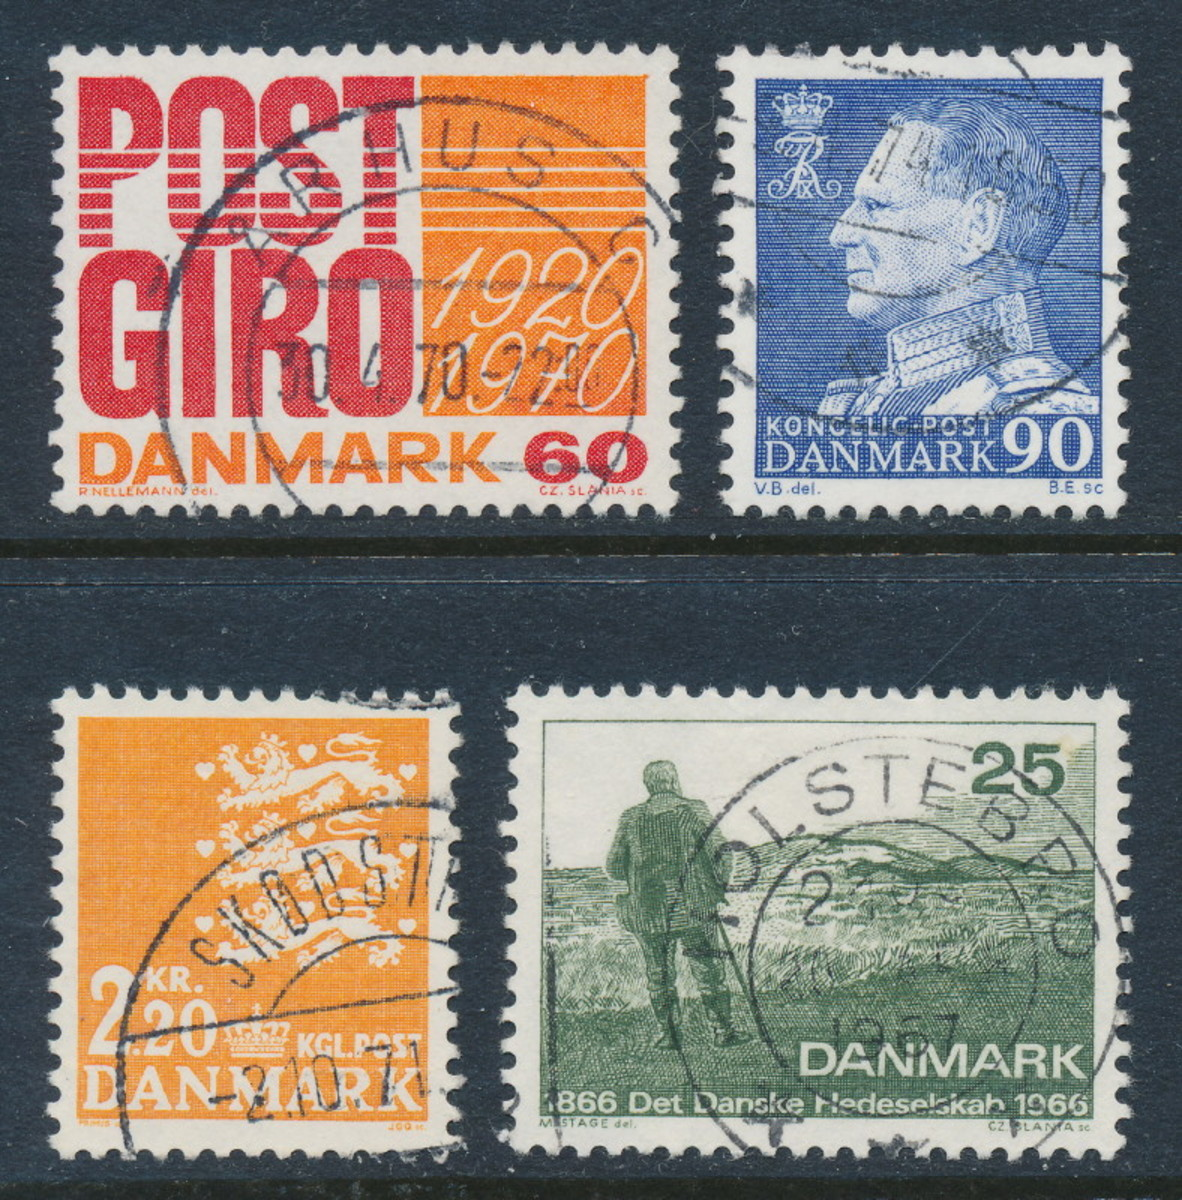 Danish stamps from my childhood